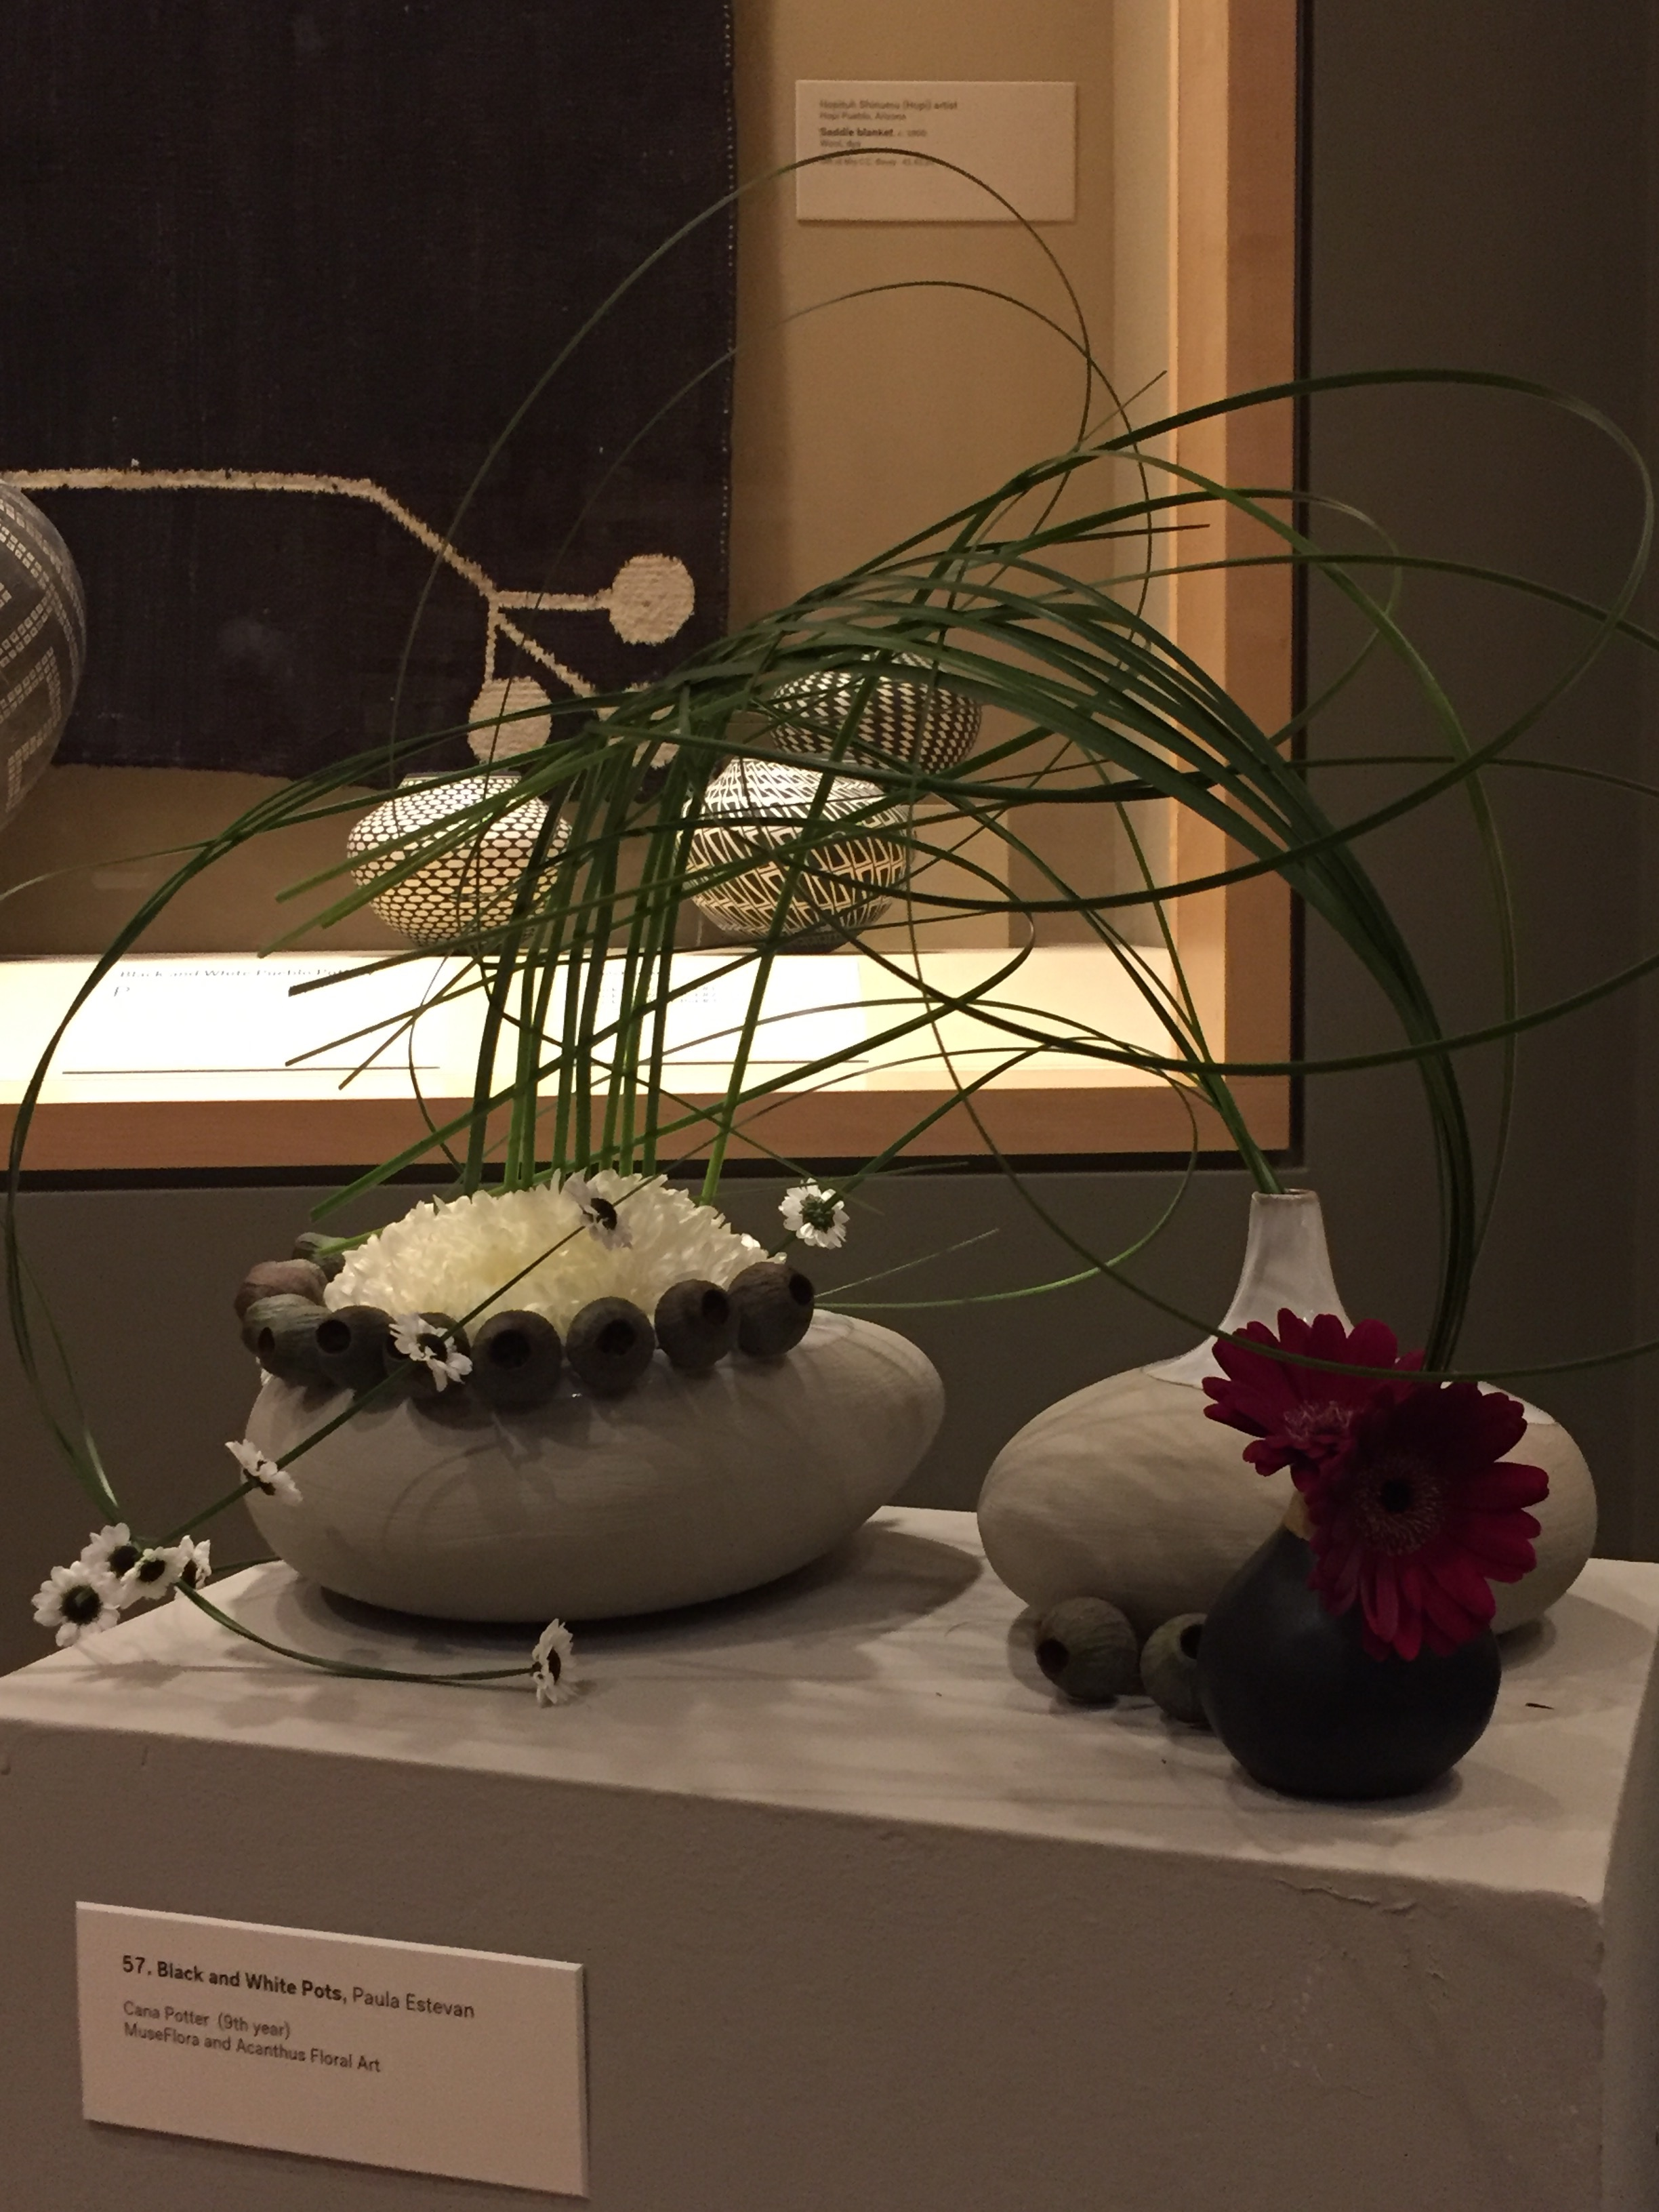 Woven bear grass, white chrysanthemums, red gerberas, black and white mum poms, and eucalyptus pods.